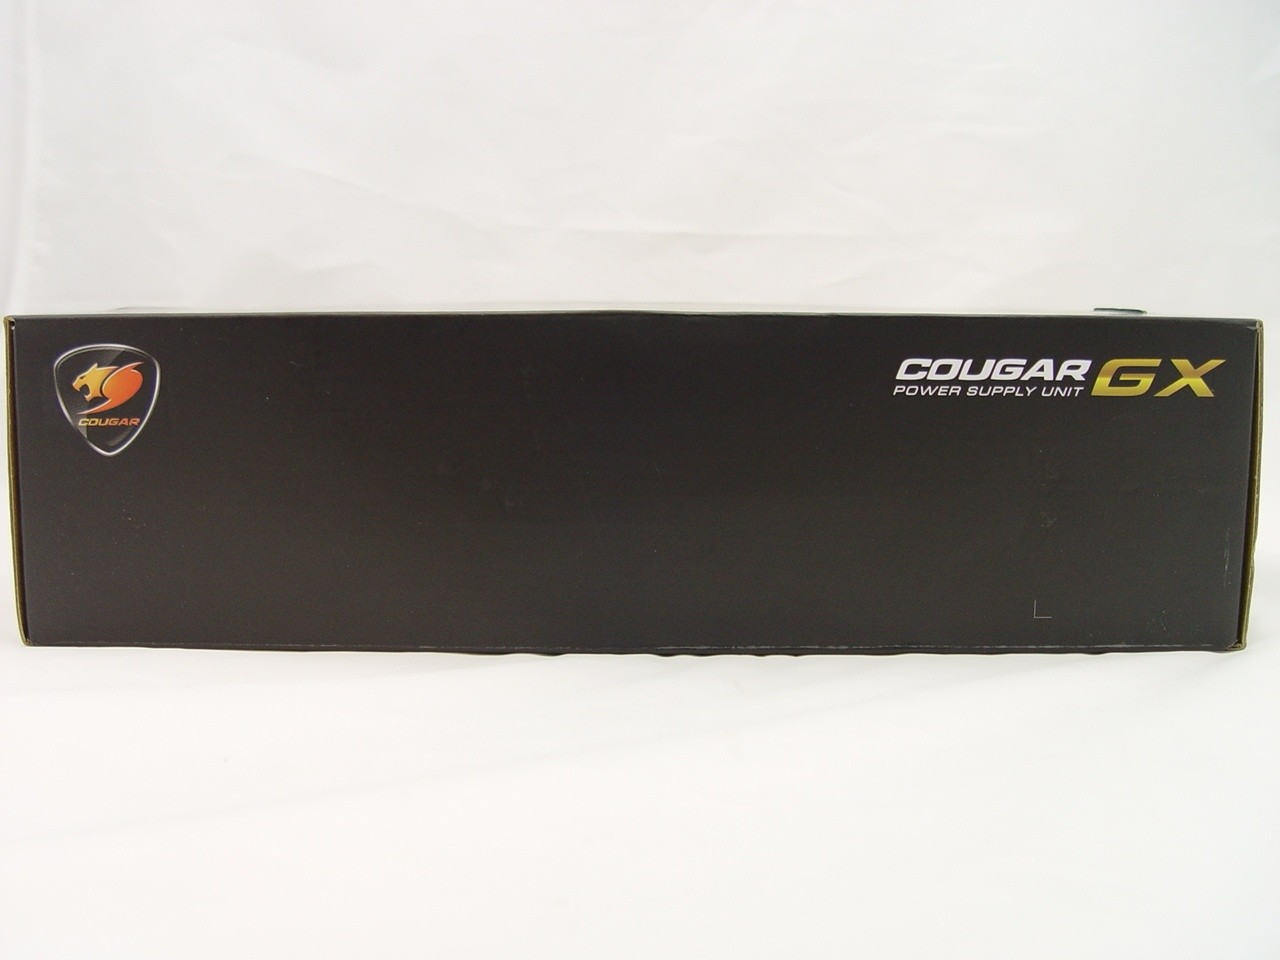 cougar_gx800_800_watt_80_plus_gold_power_supply_review